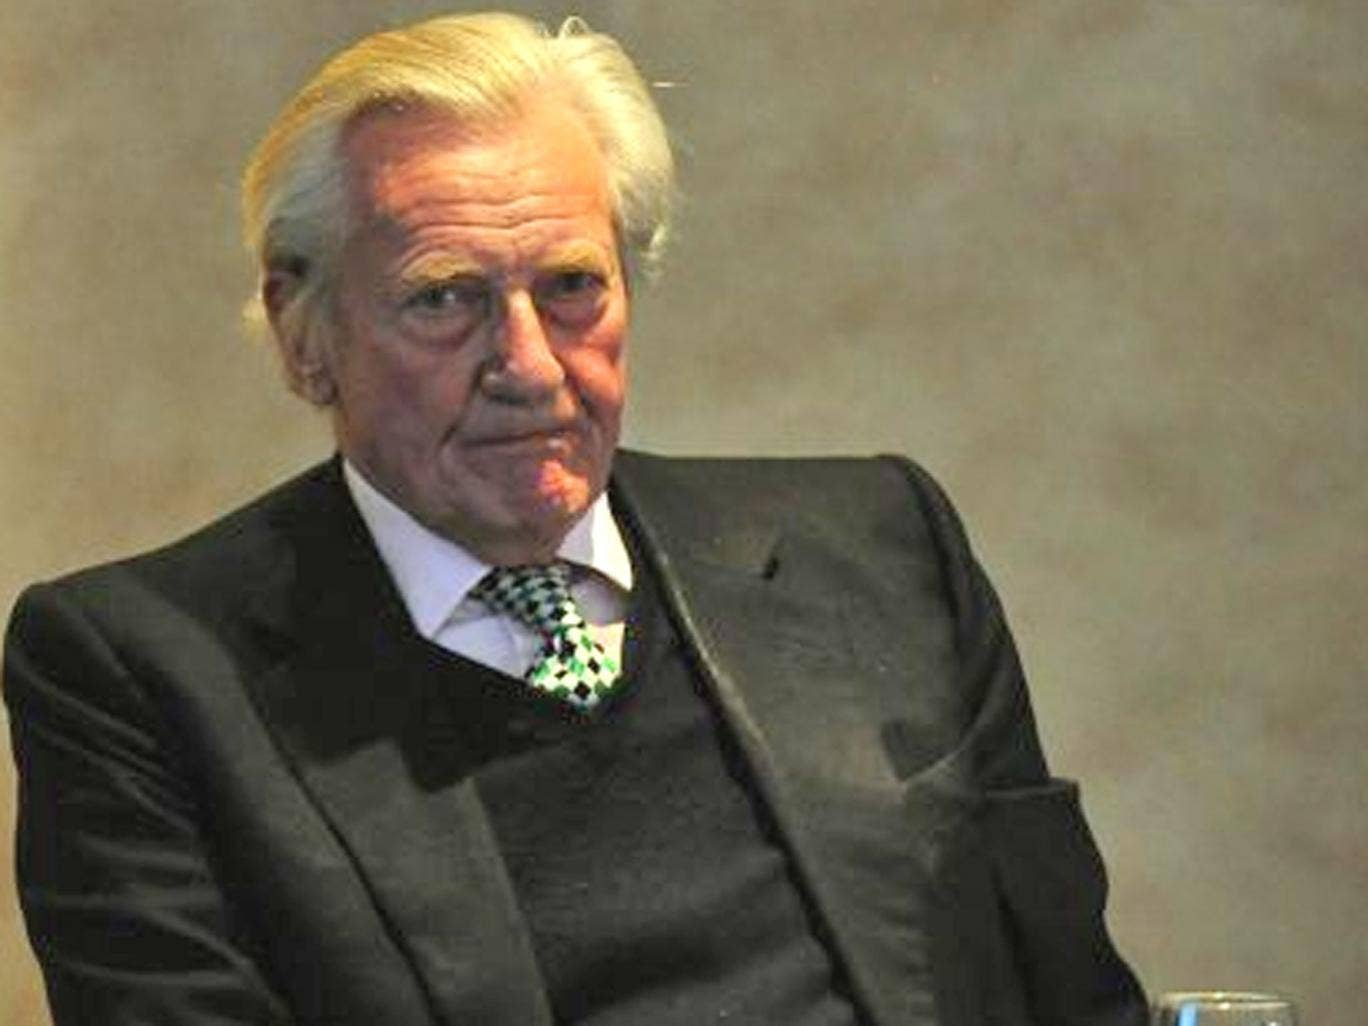 Lord Heseltine is currently advising the Government on economic regeneration in cities